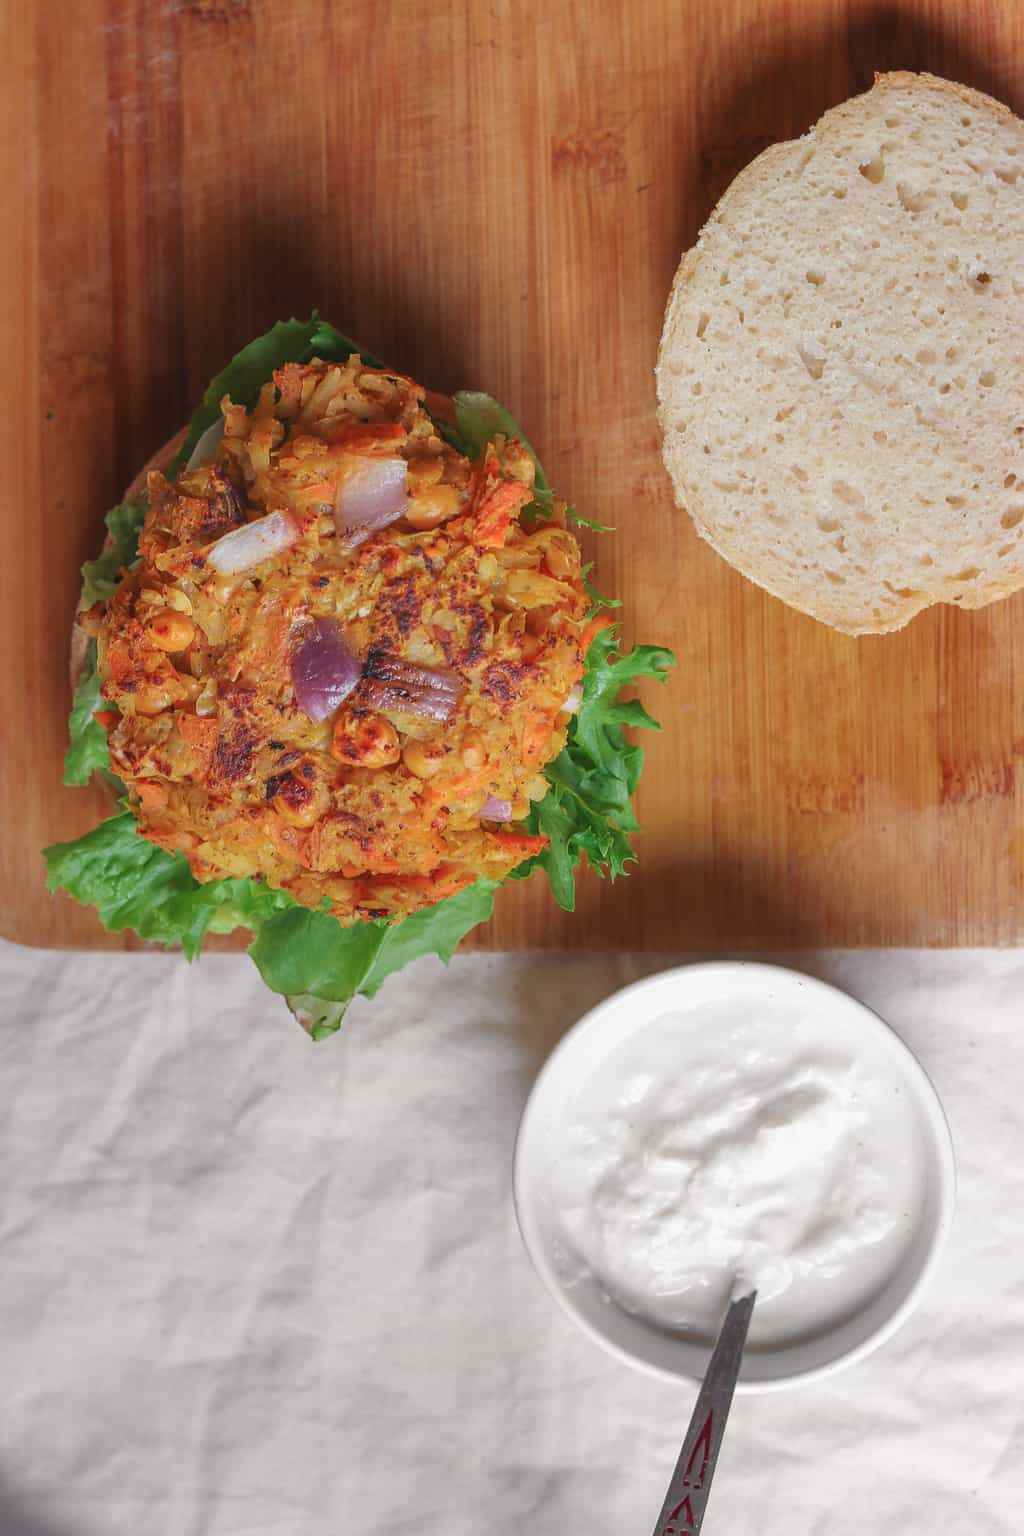 Vegan chickpea fritter burger resting on a table with a bowl of soy yoghurt nearby